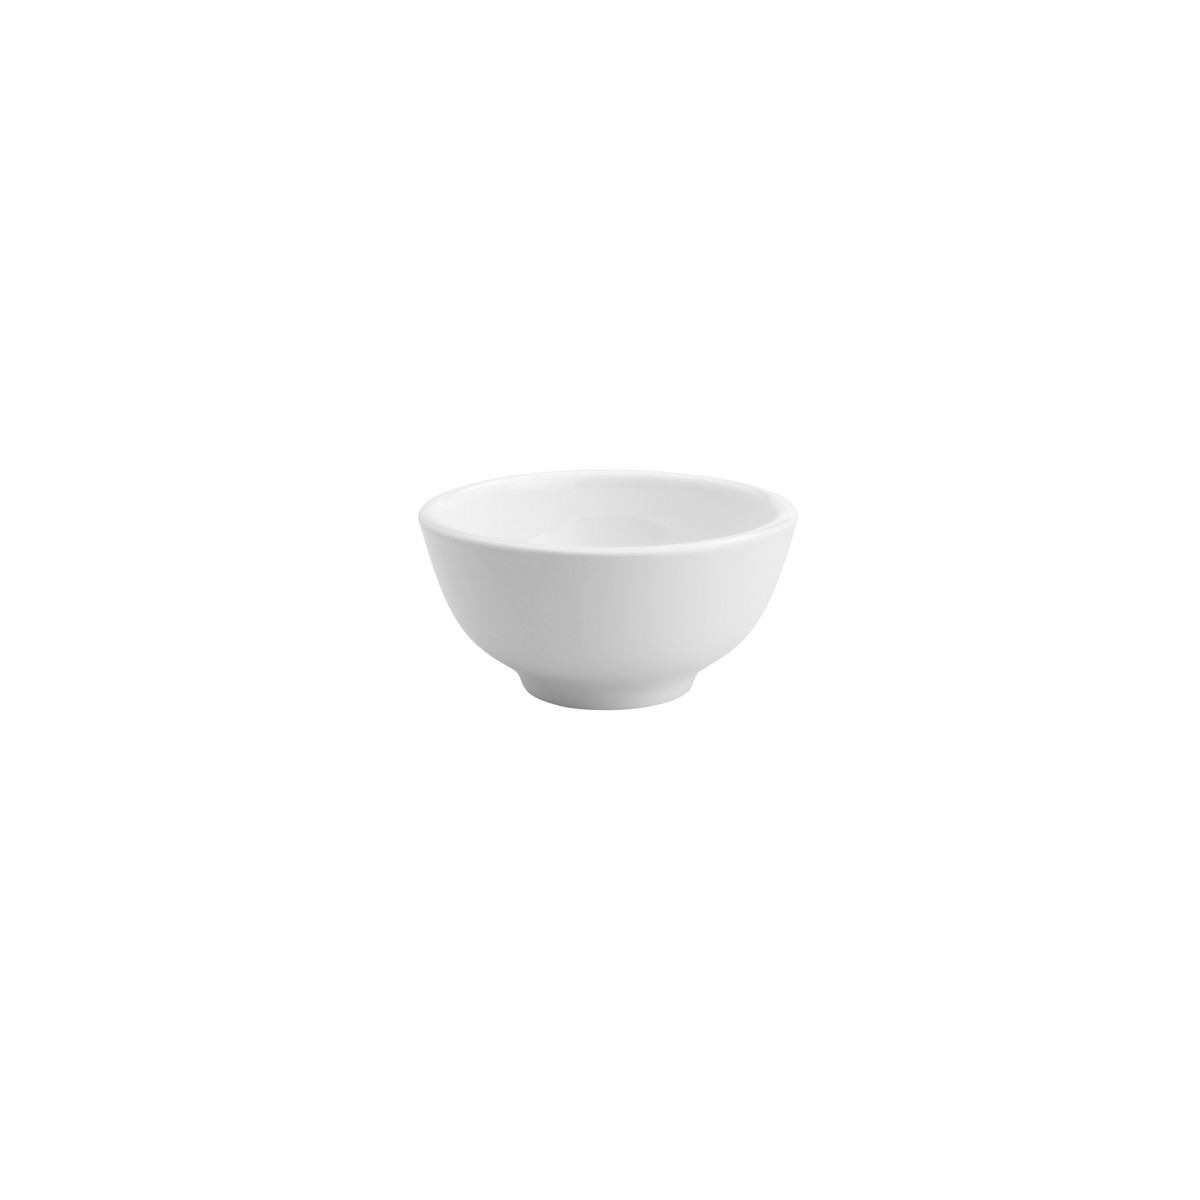 Bowl Porcelana Clean 16x7,5cm Lyor